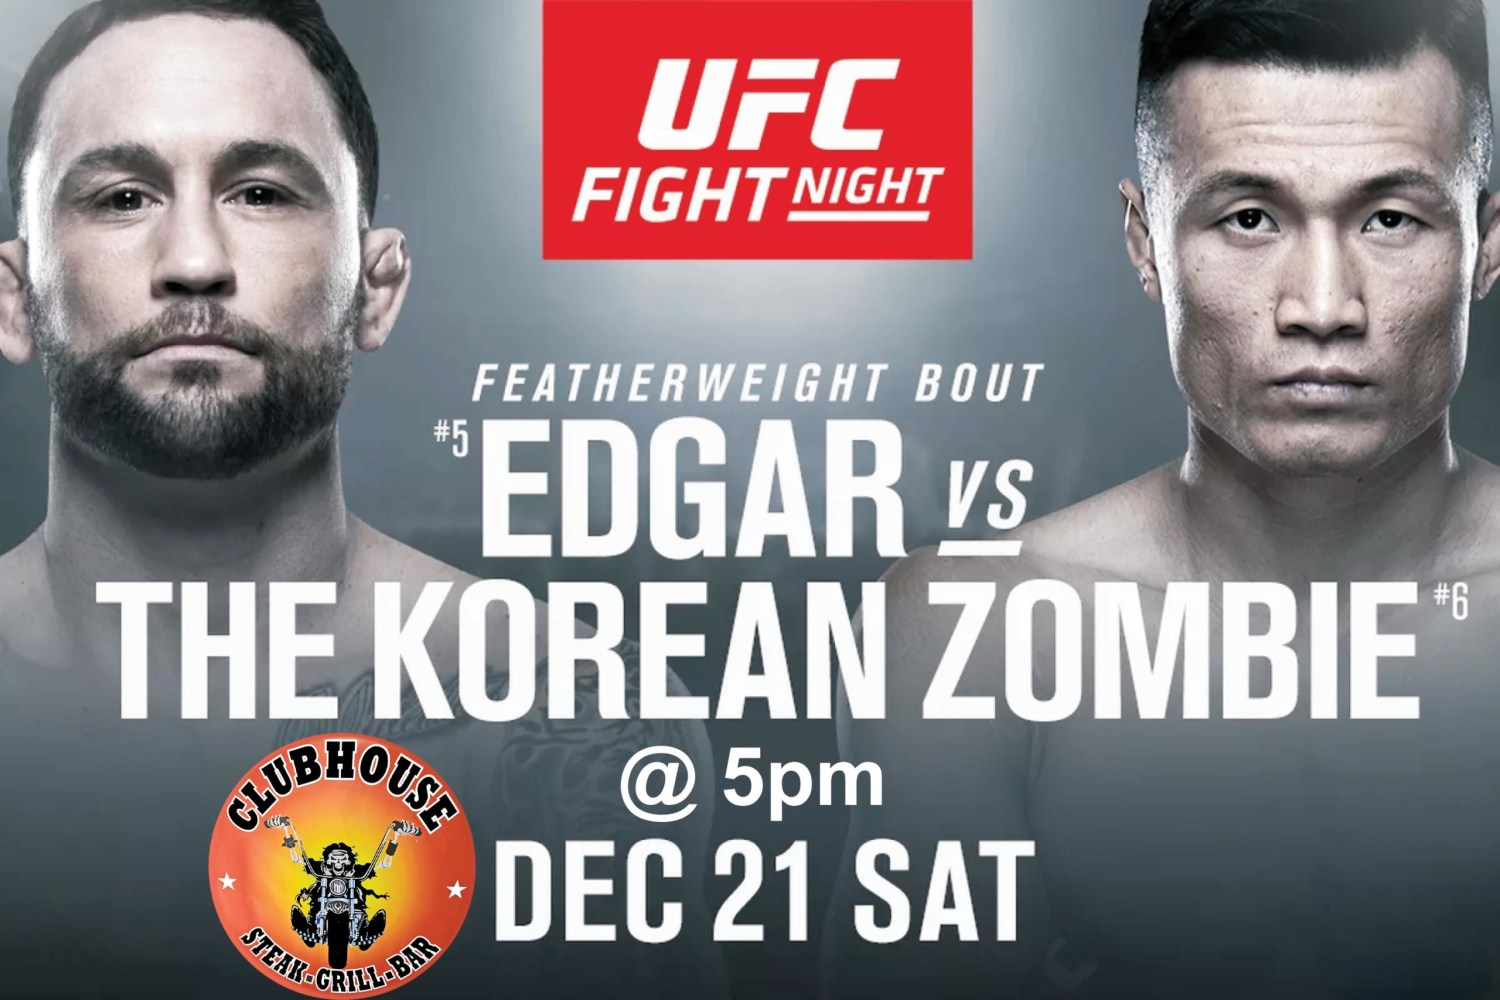 Clubhouse Sanur UFC Featherweight Edgar v Korean Zombie Dec 21 in Bali